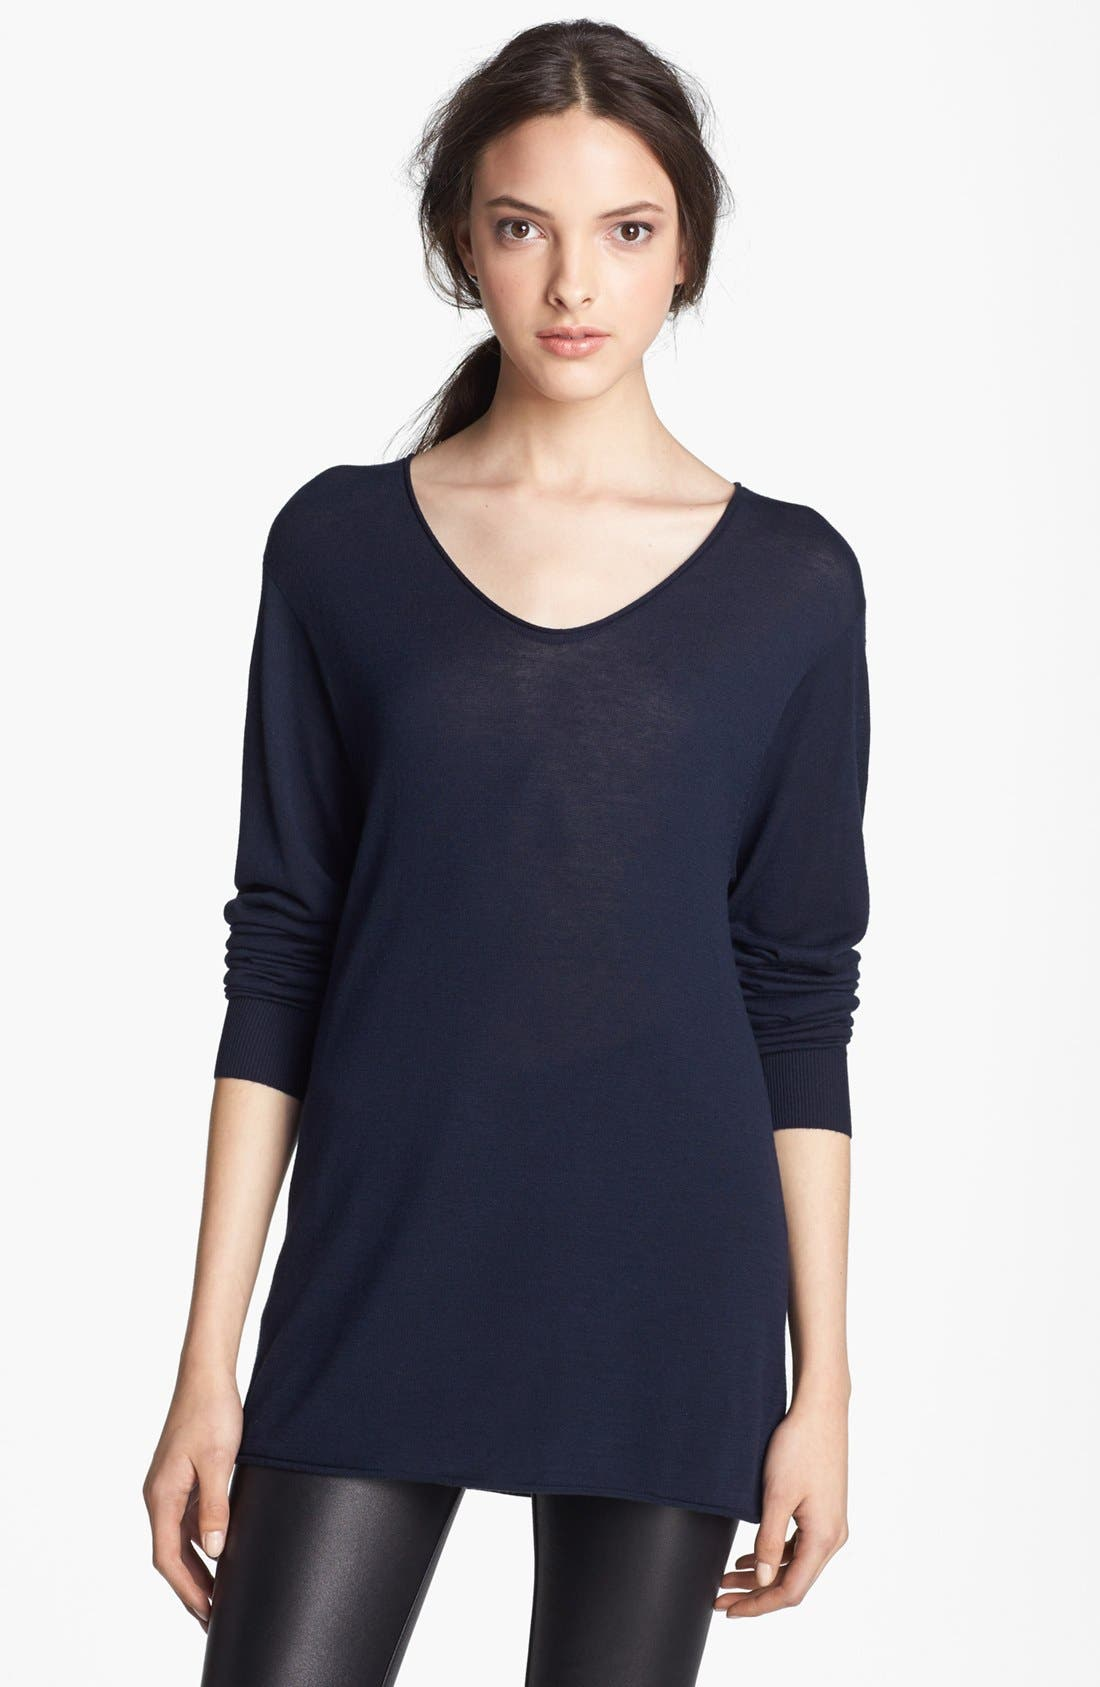 Alternate Image 1 Selected - T by Alexander Wang Fitted Jersey Tee